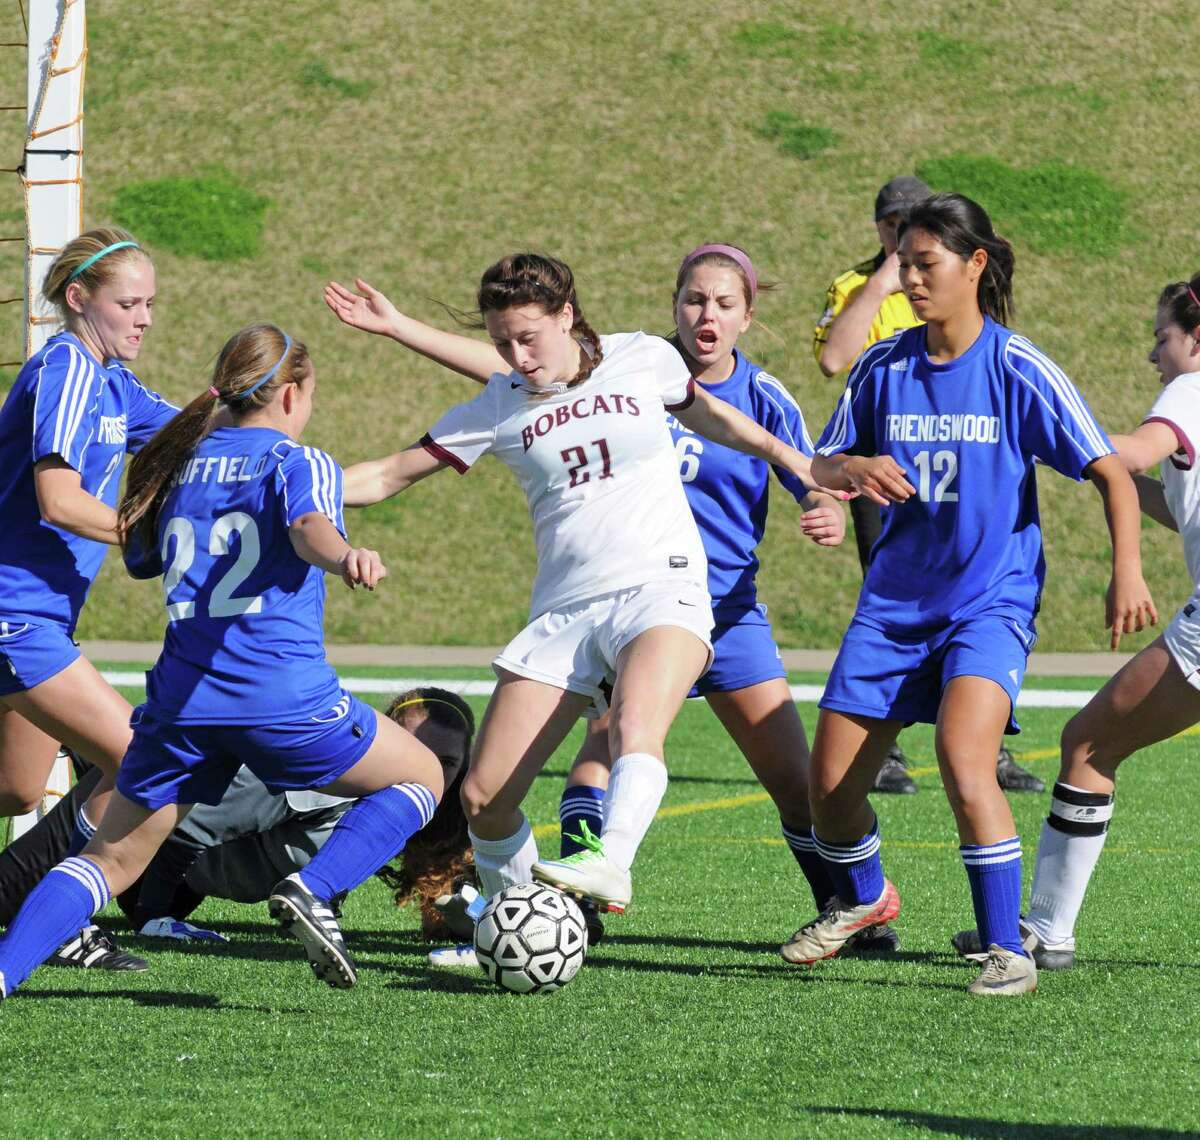 Cy-Fair junior Delaney Reynolds (21) is surrounded near the goal by Friendswood Lady Mustangs during the Bobcats' 1-0 win at the Katy I-10 Shootout earlier this month at Rhodes Stadium. The victory was part of a 4-0-2 overall start by Cy-Fair.